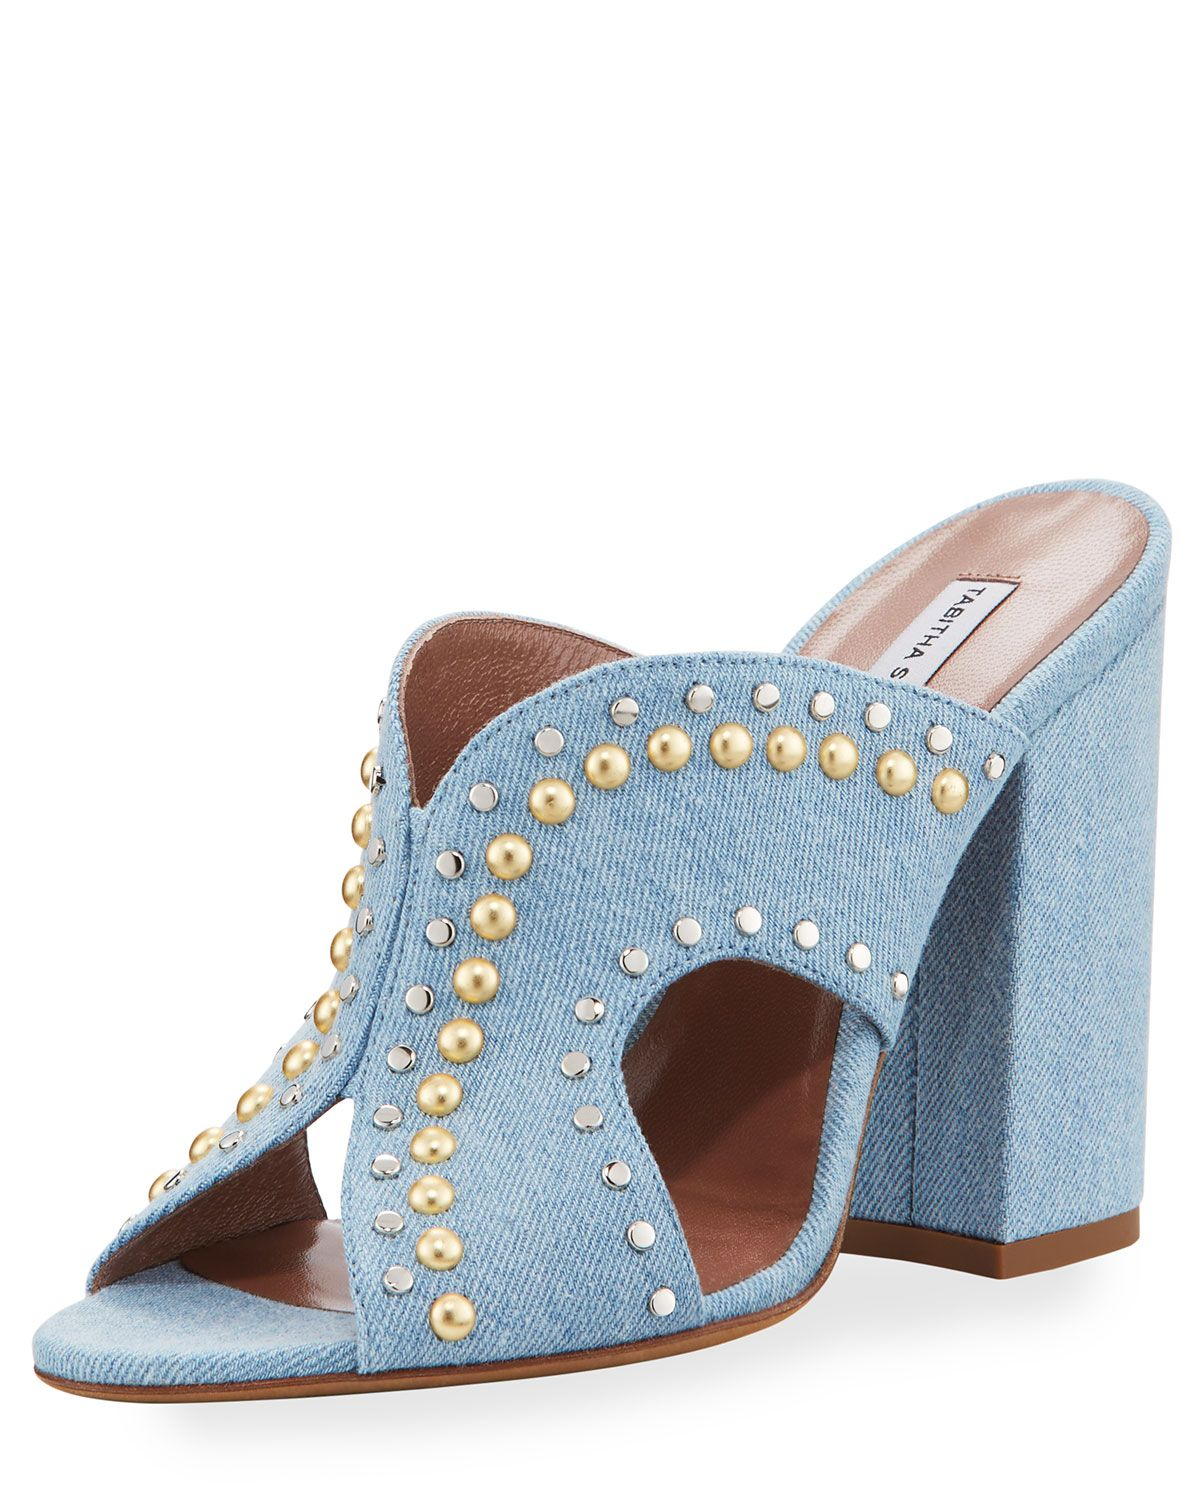 Tabitha Simmons Celia Studded Denim Sandals